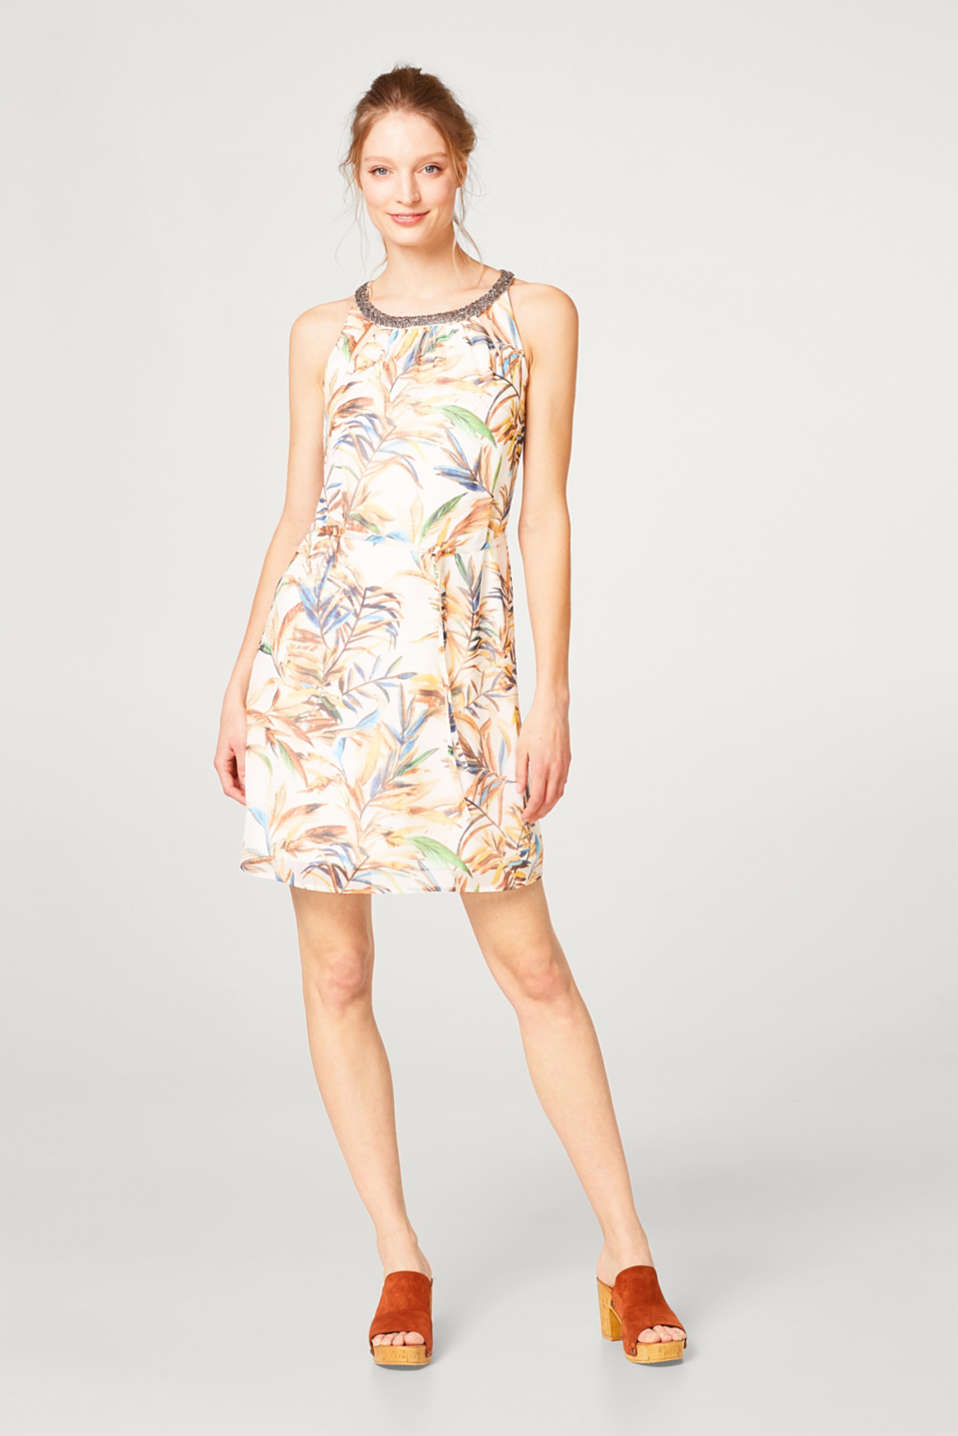 Lightweight chiffon dress with a print and decorative jewellery